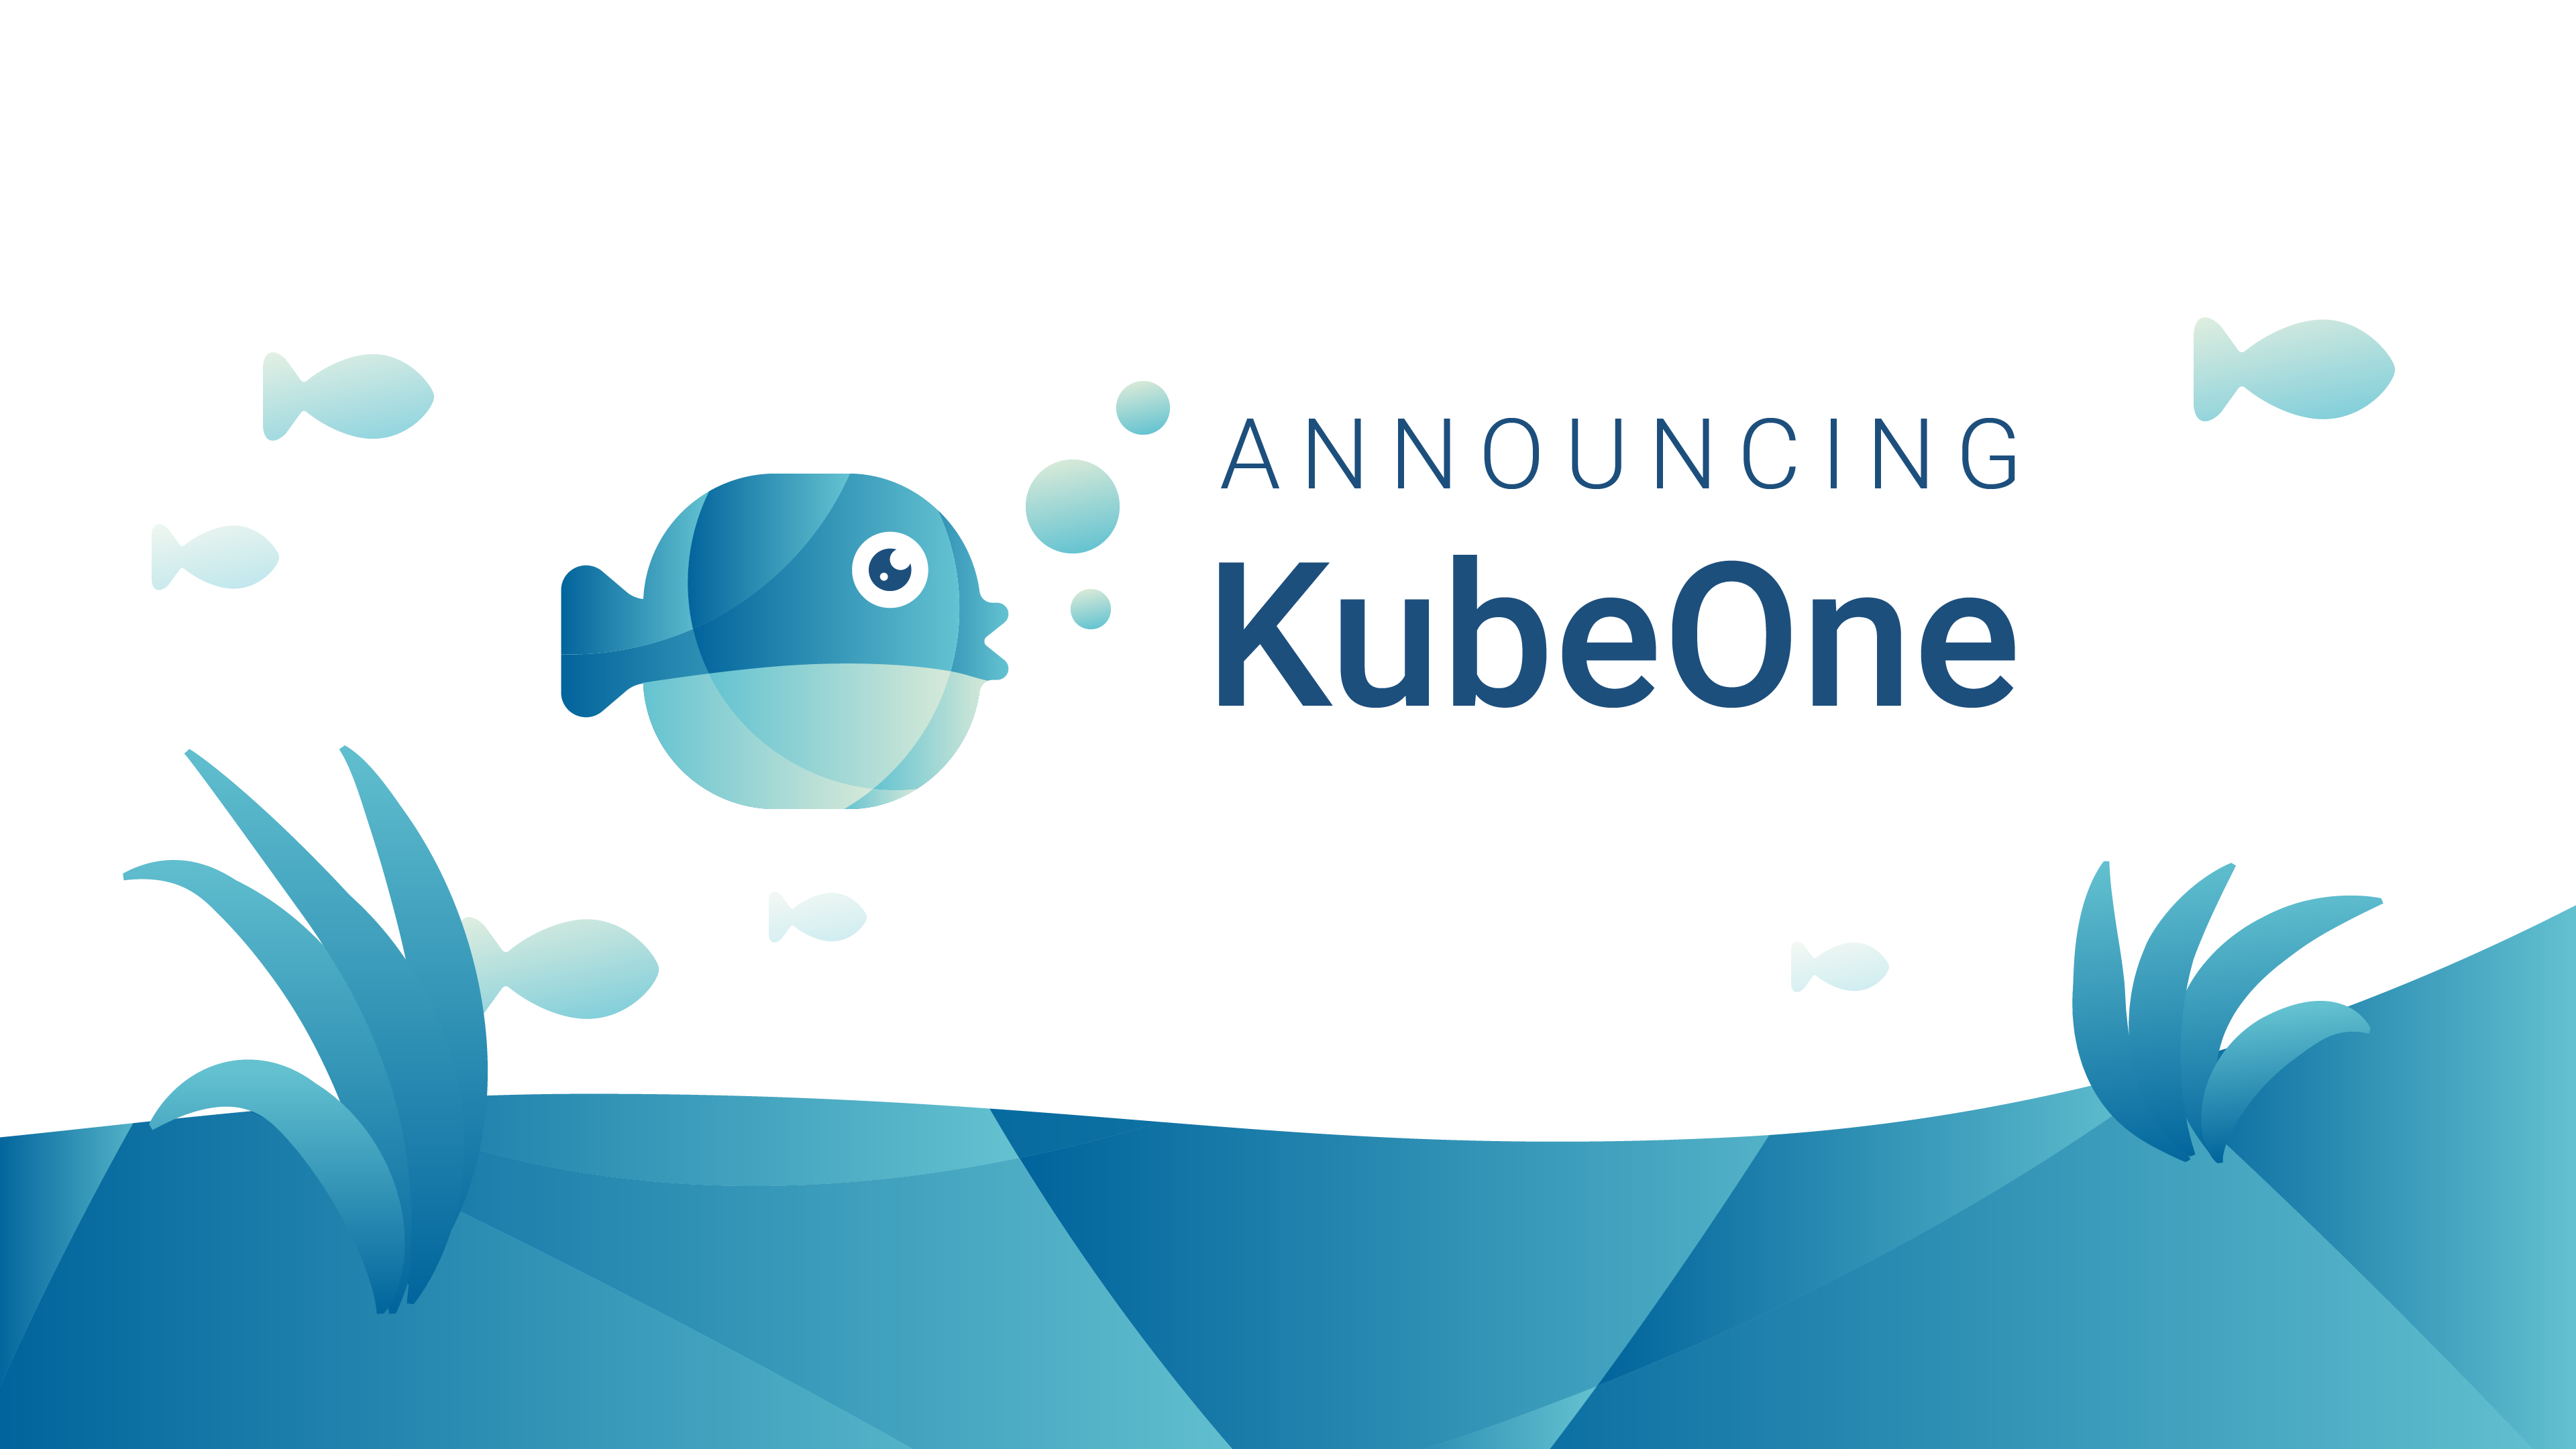 KubeOne: A New Lifecycle Management Tool for HA Kubernetes Clusters front image